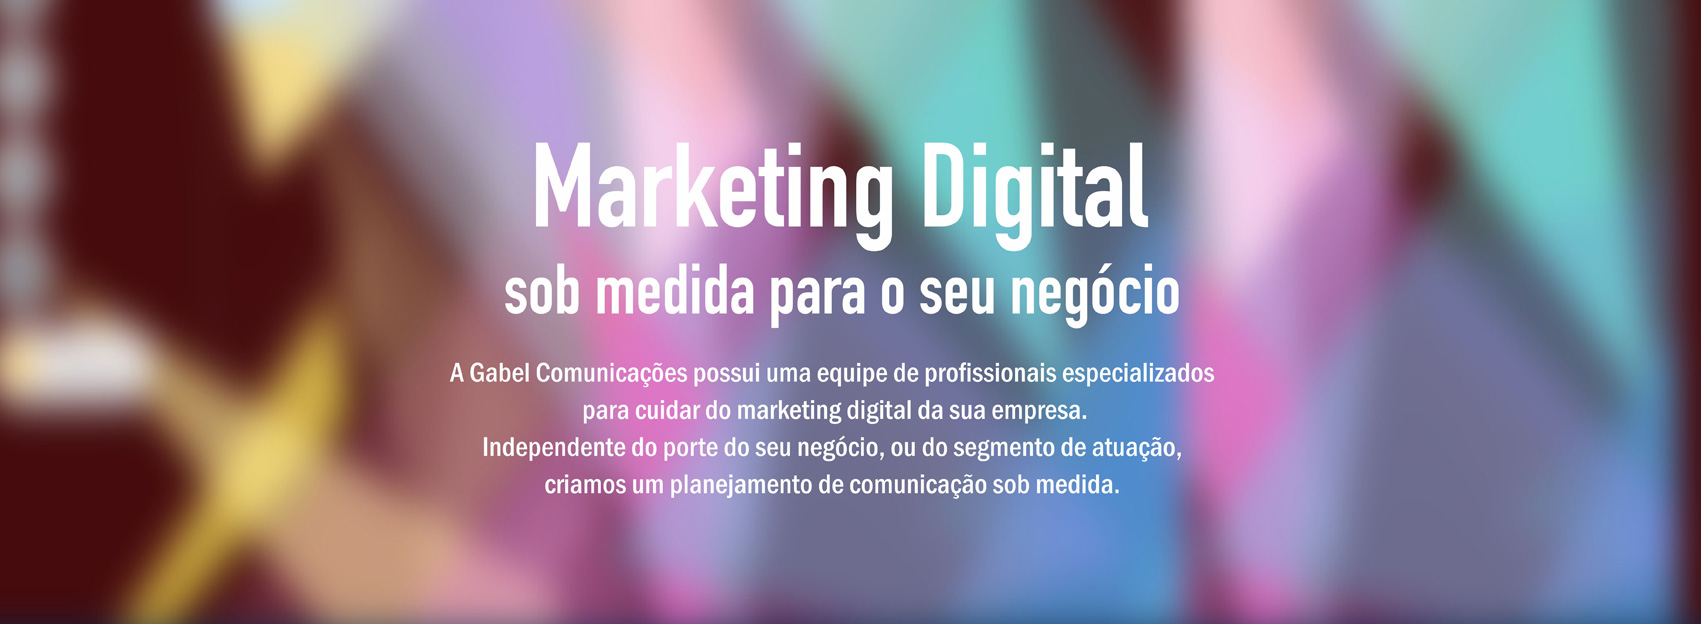 mkt-digital-3net